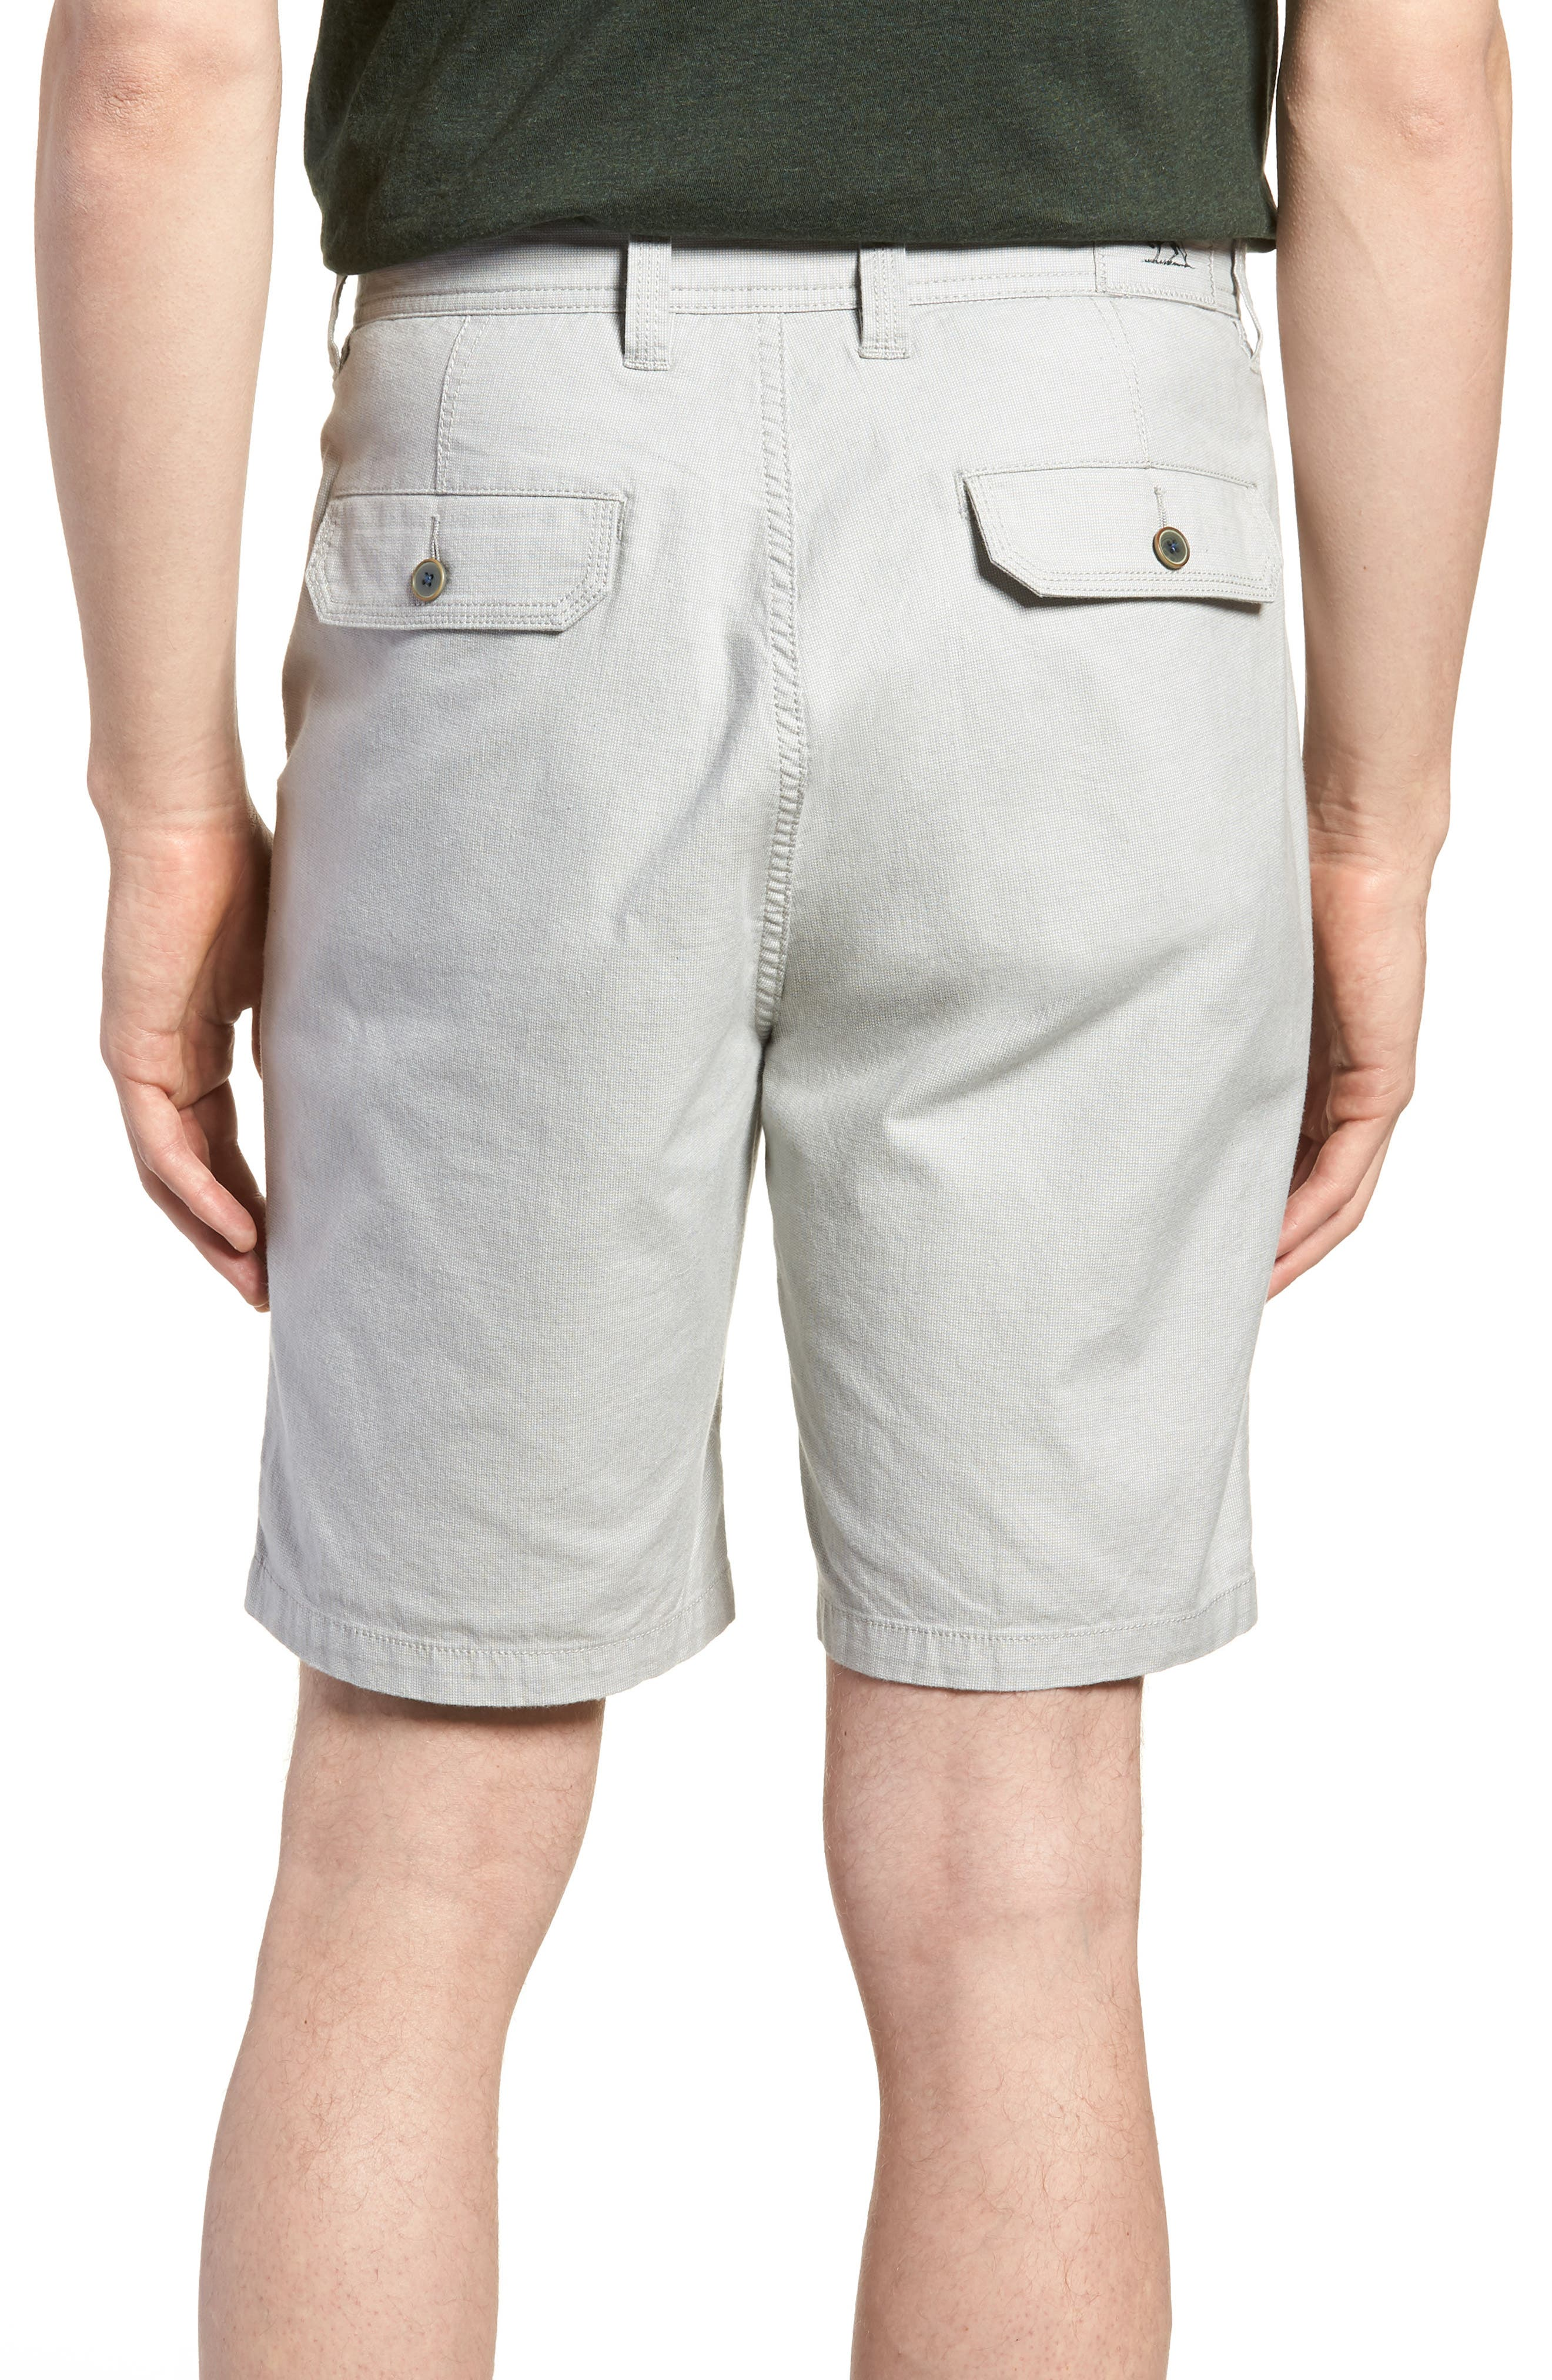 Millwater Shorts,                             Alternate thumbnail 2, color,                             SAND